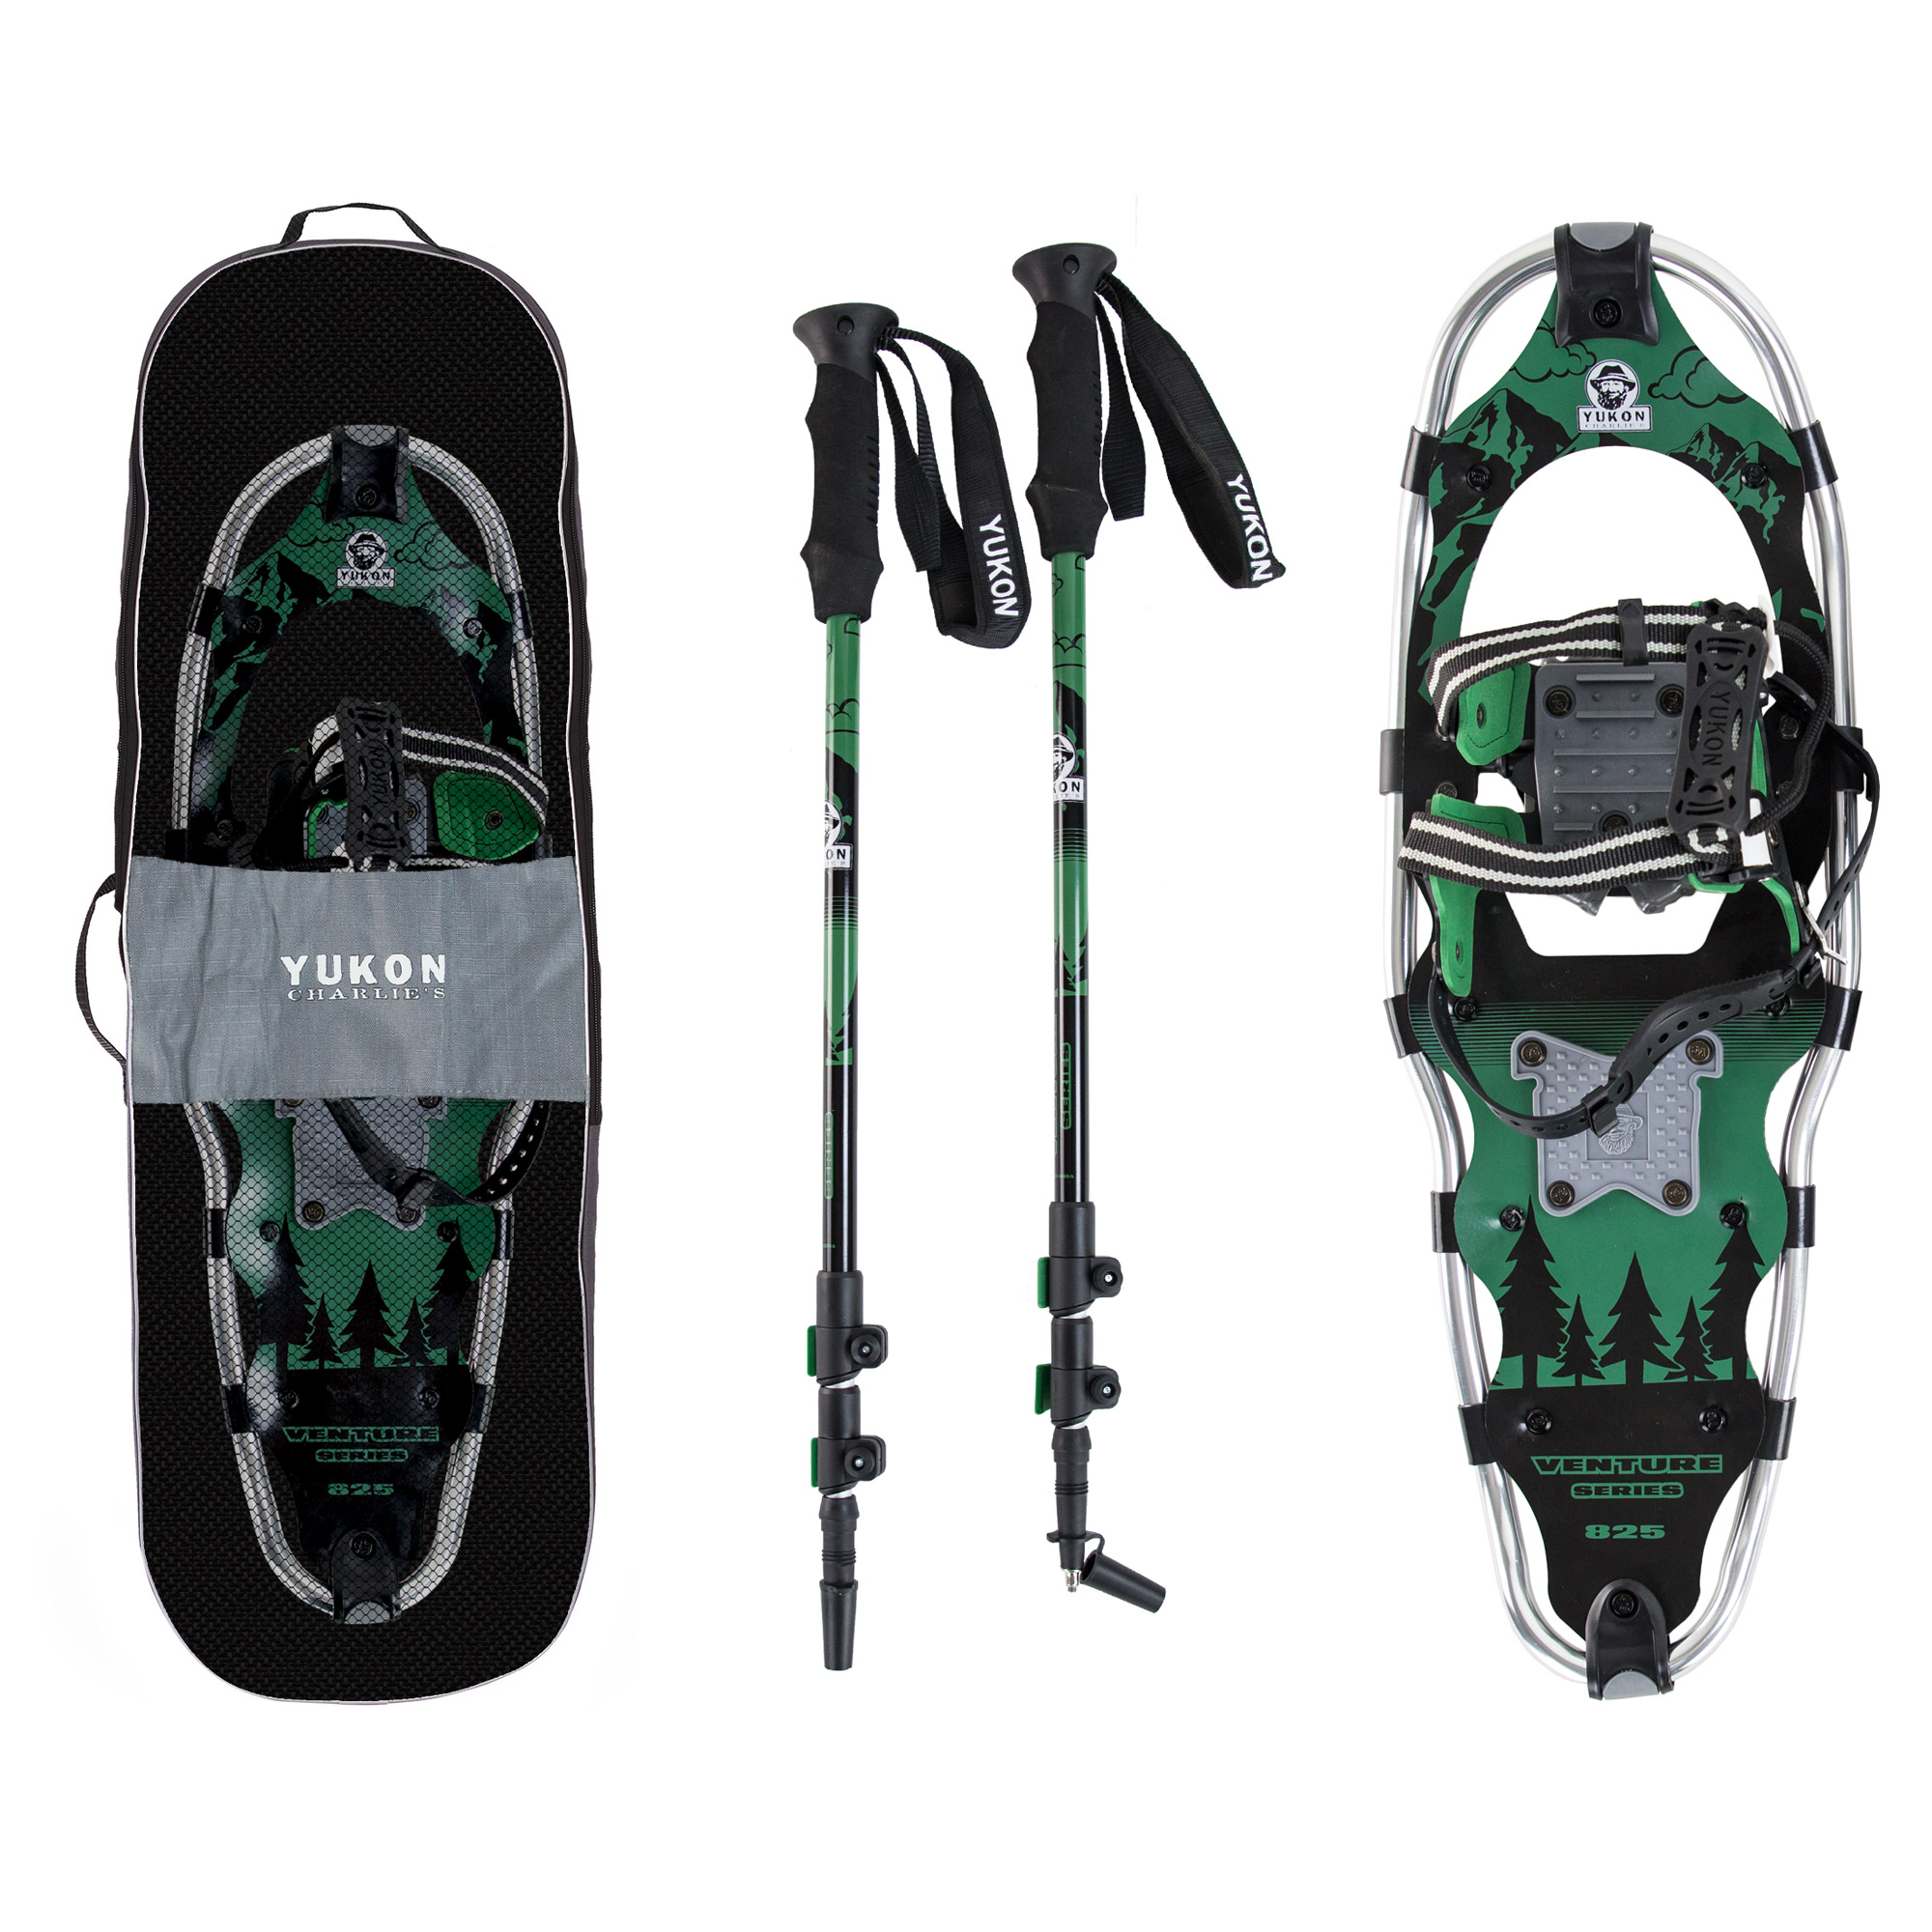 Yukon Charlie's Advanced 9x30 Inch Men's Snowshoe Kit with Aluminum Poles & Bag